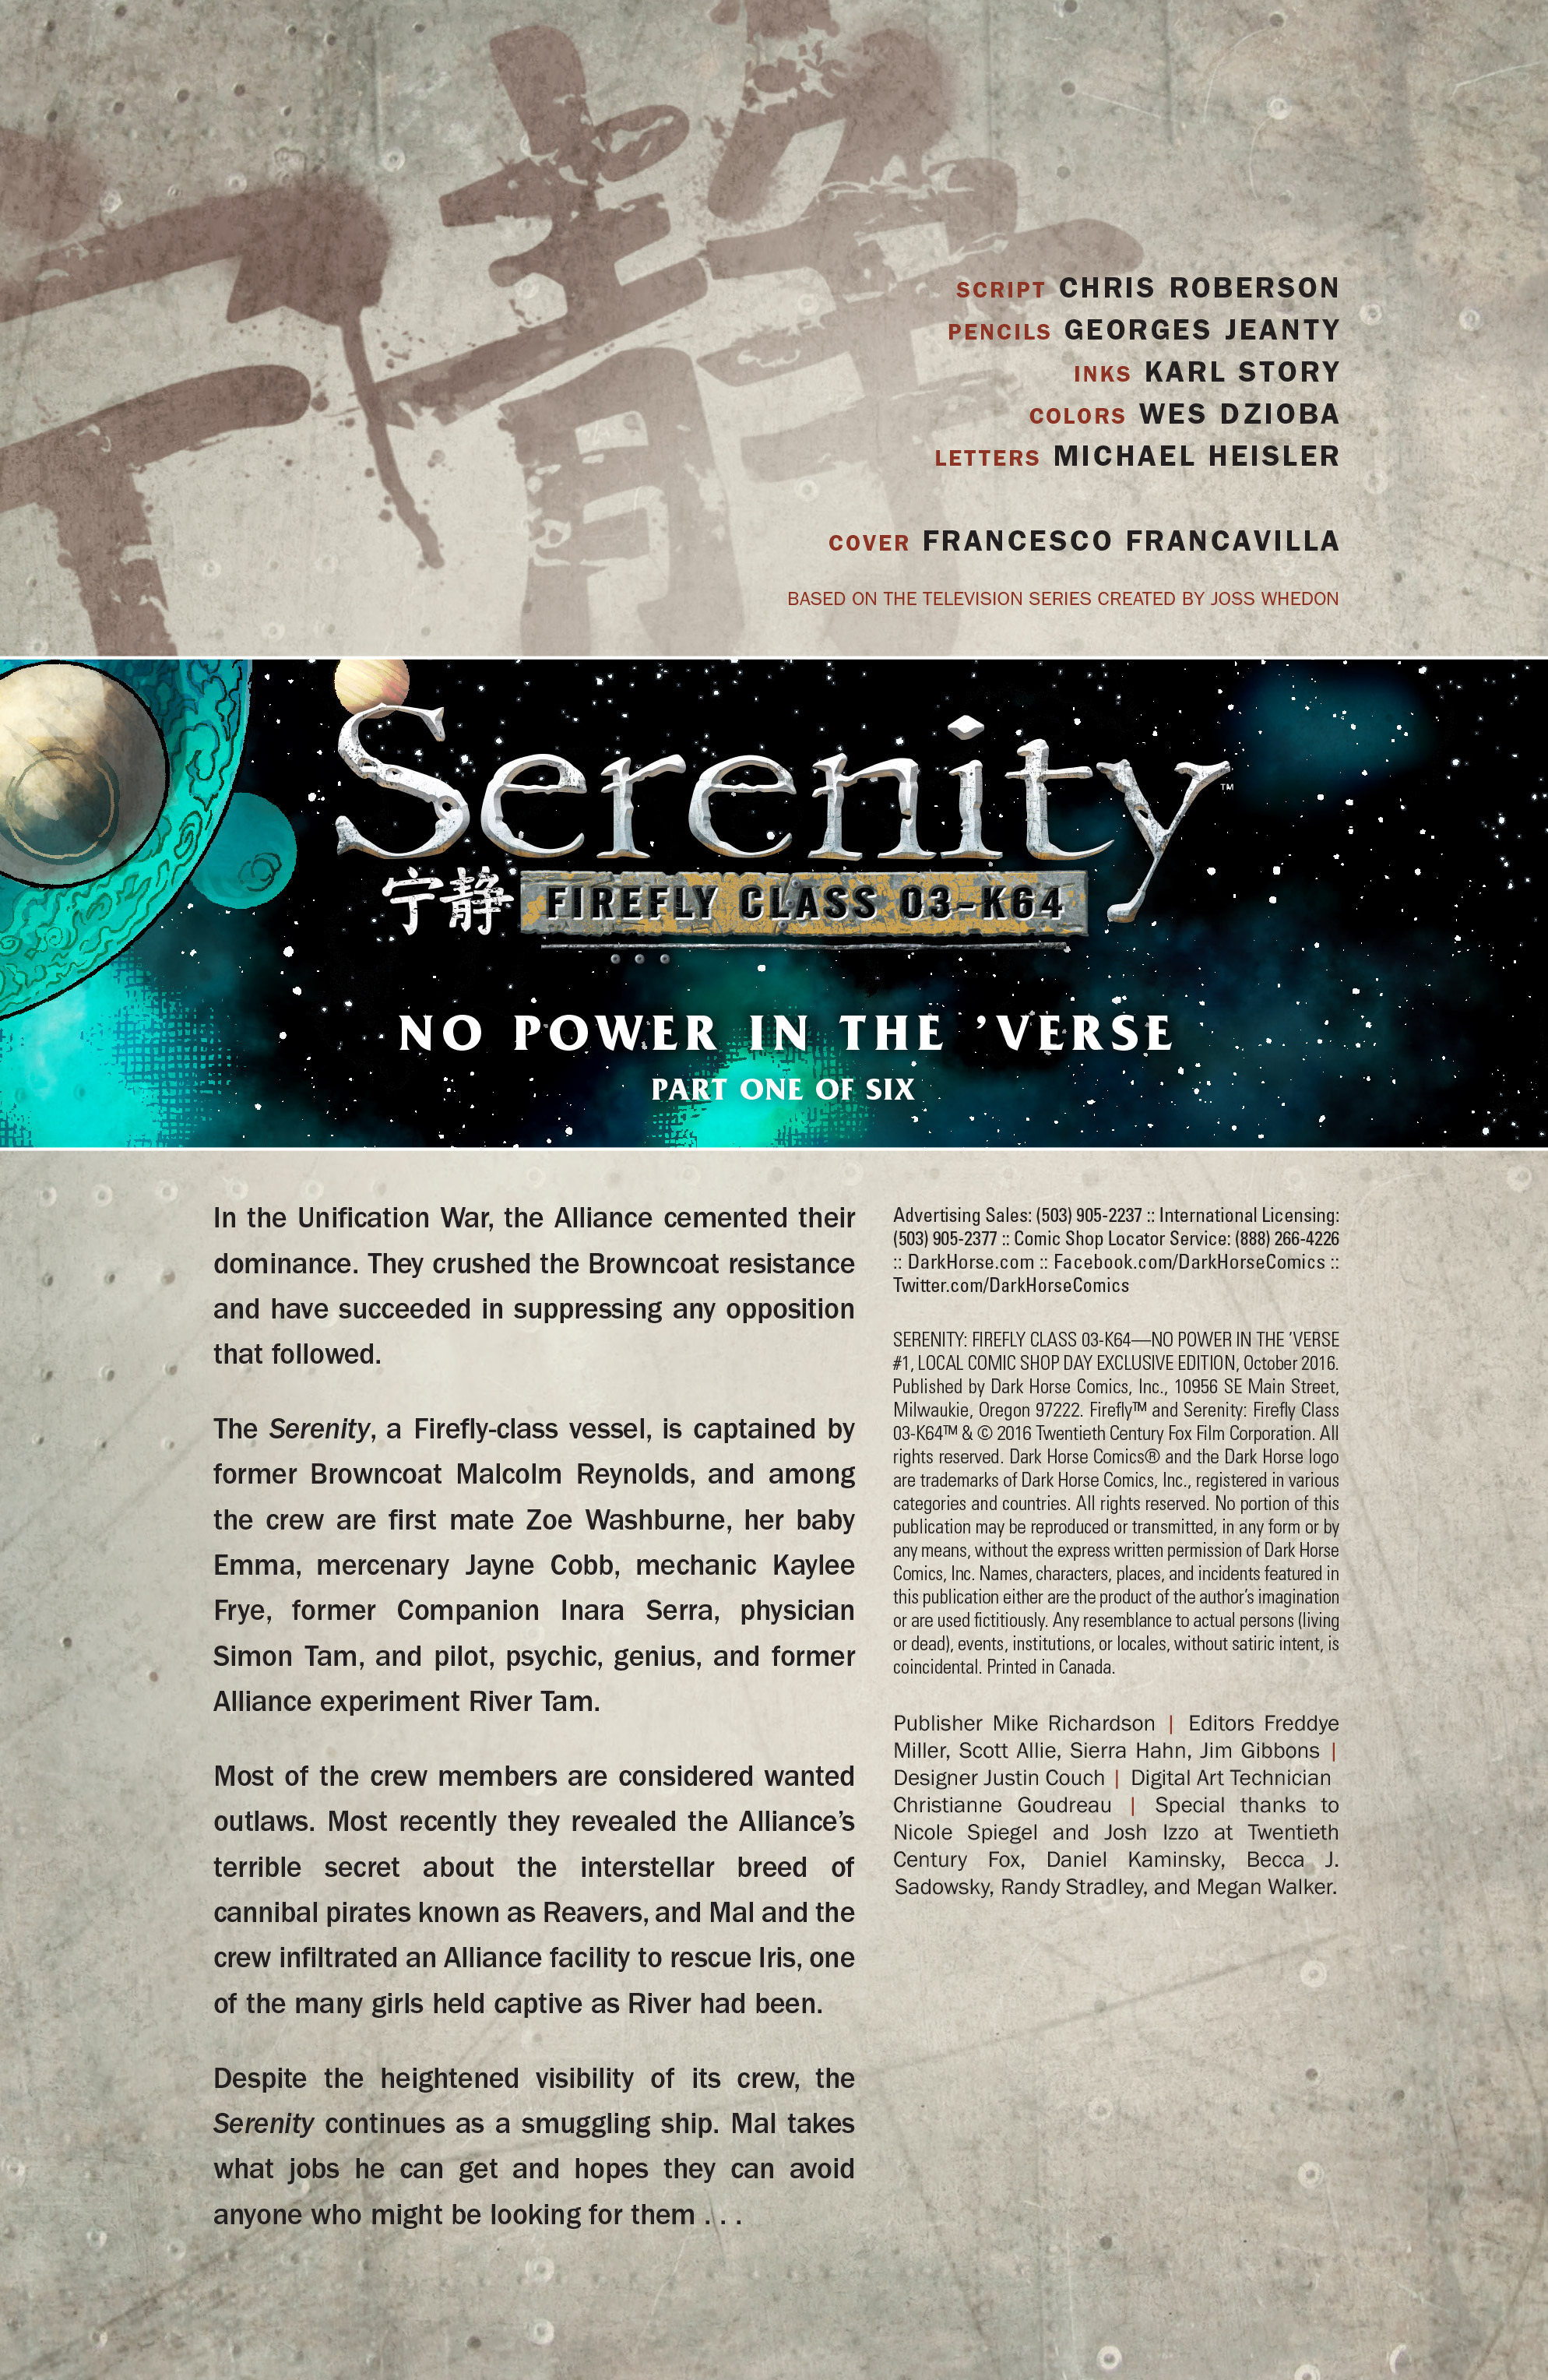 Read online Serenity: Firefly Class 03-K64 – No Power in the 'Verse comic -  Issue #1 - 11